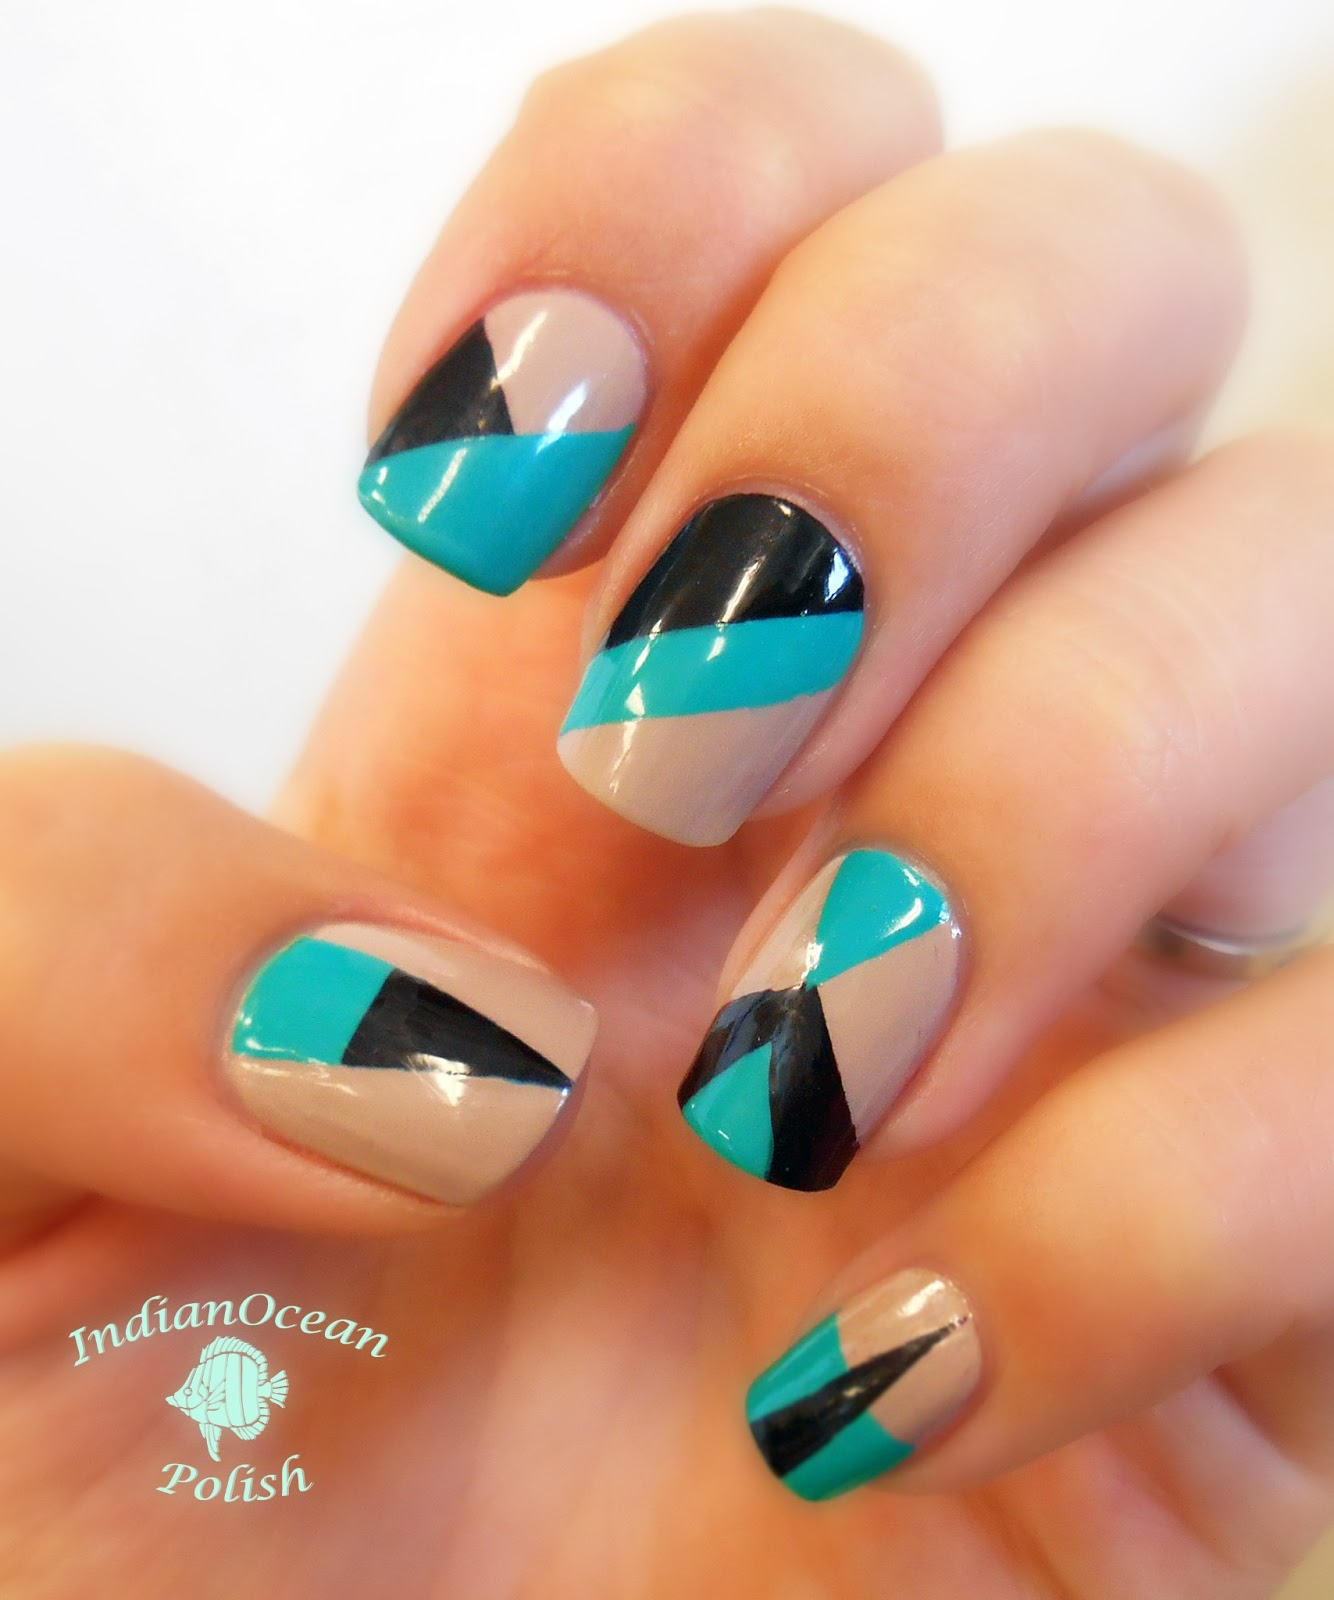 Indian Ocean Polish: Colour Blocking Nails With OPI Fly